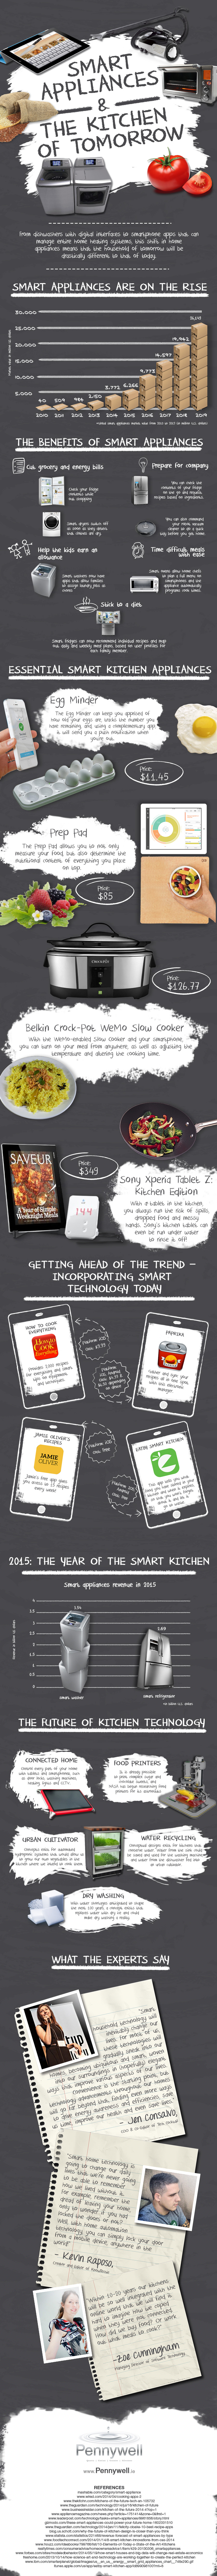 Smart-Appliances-and-Kitchen-of-Tomorrow-Infographic